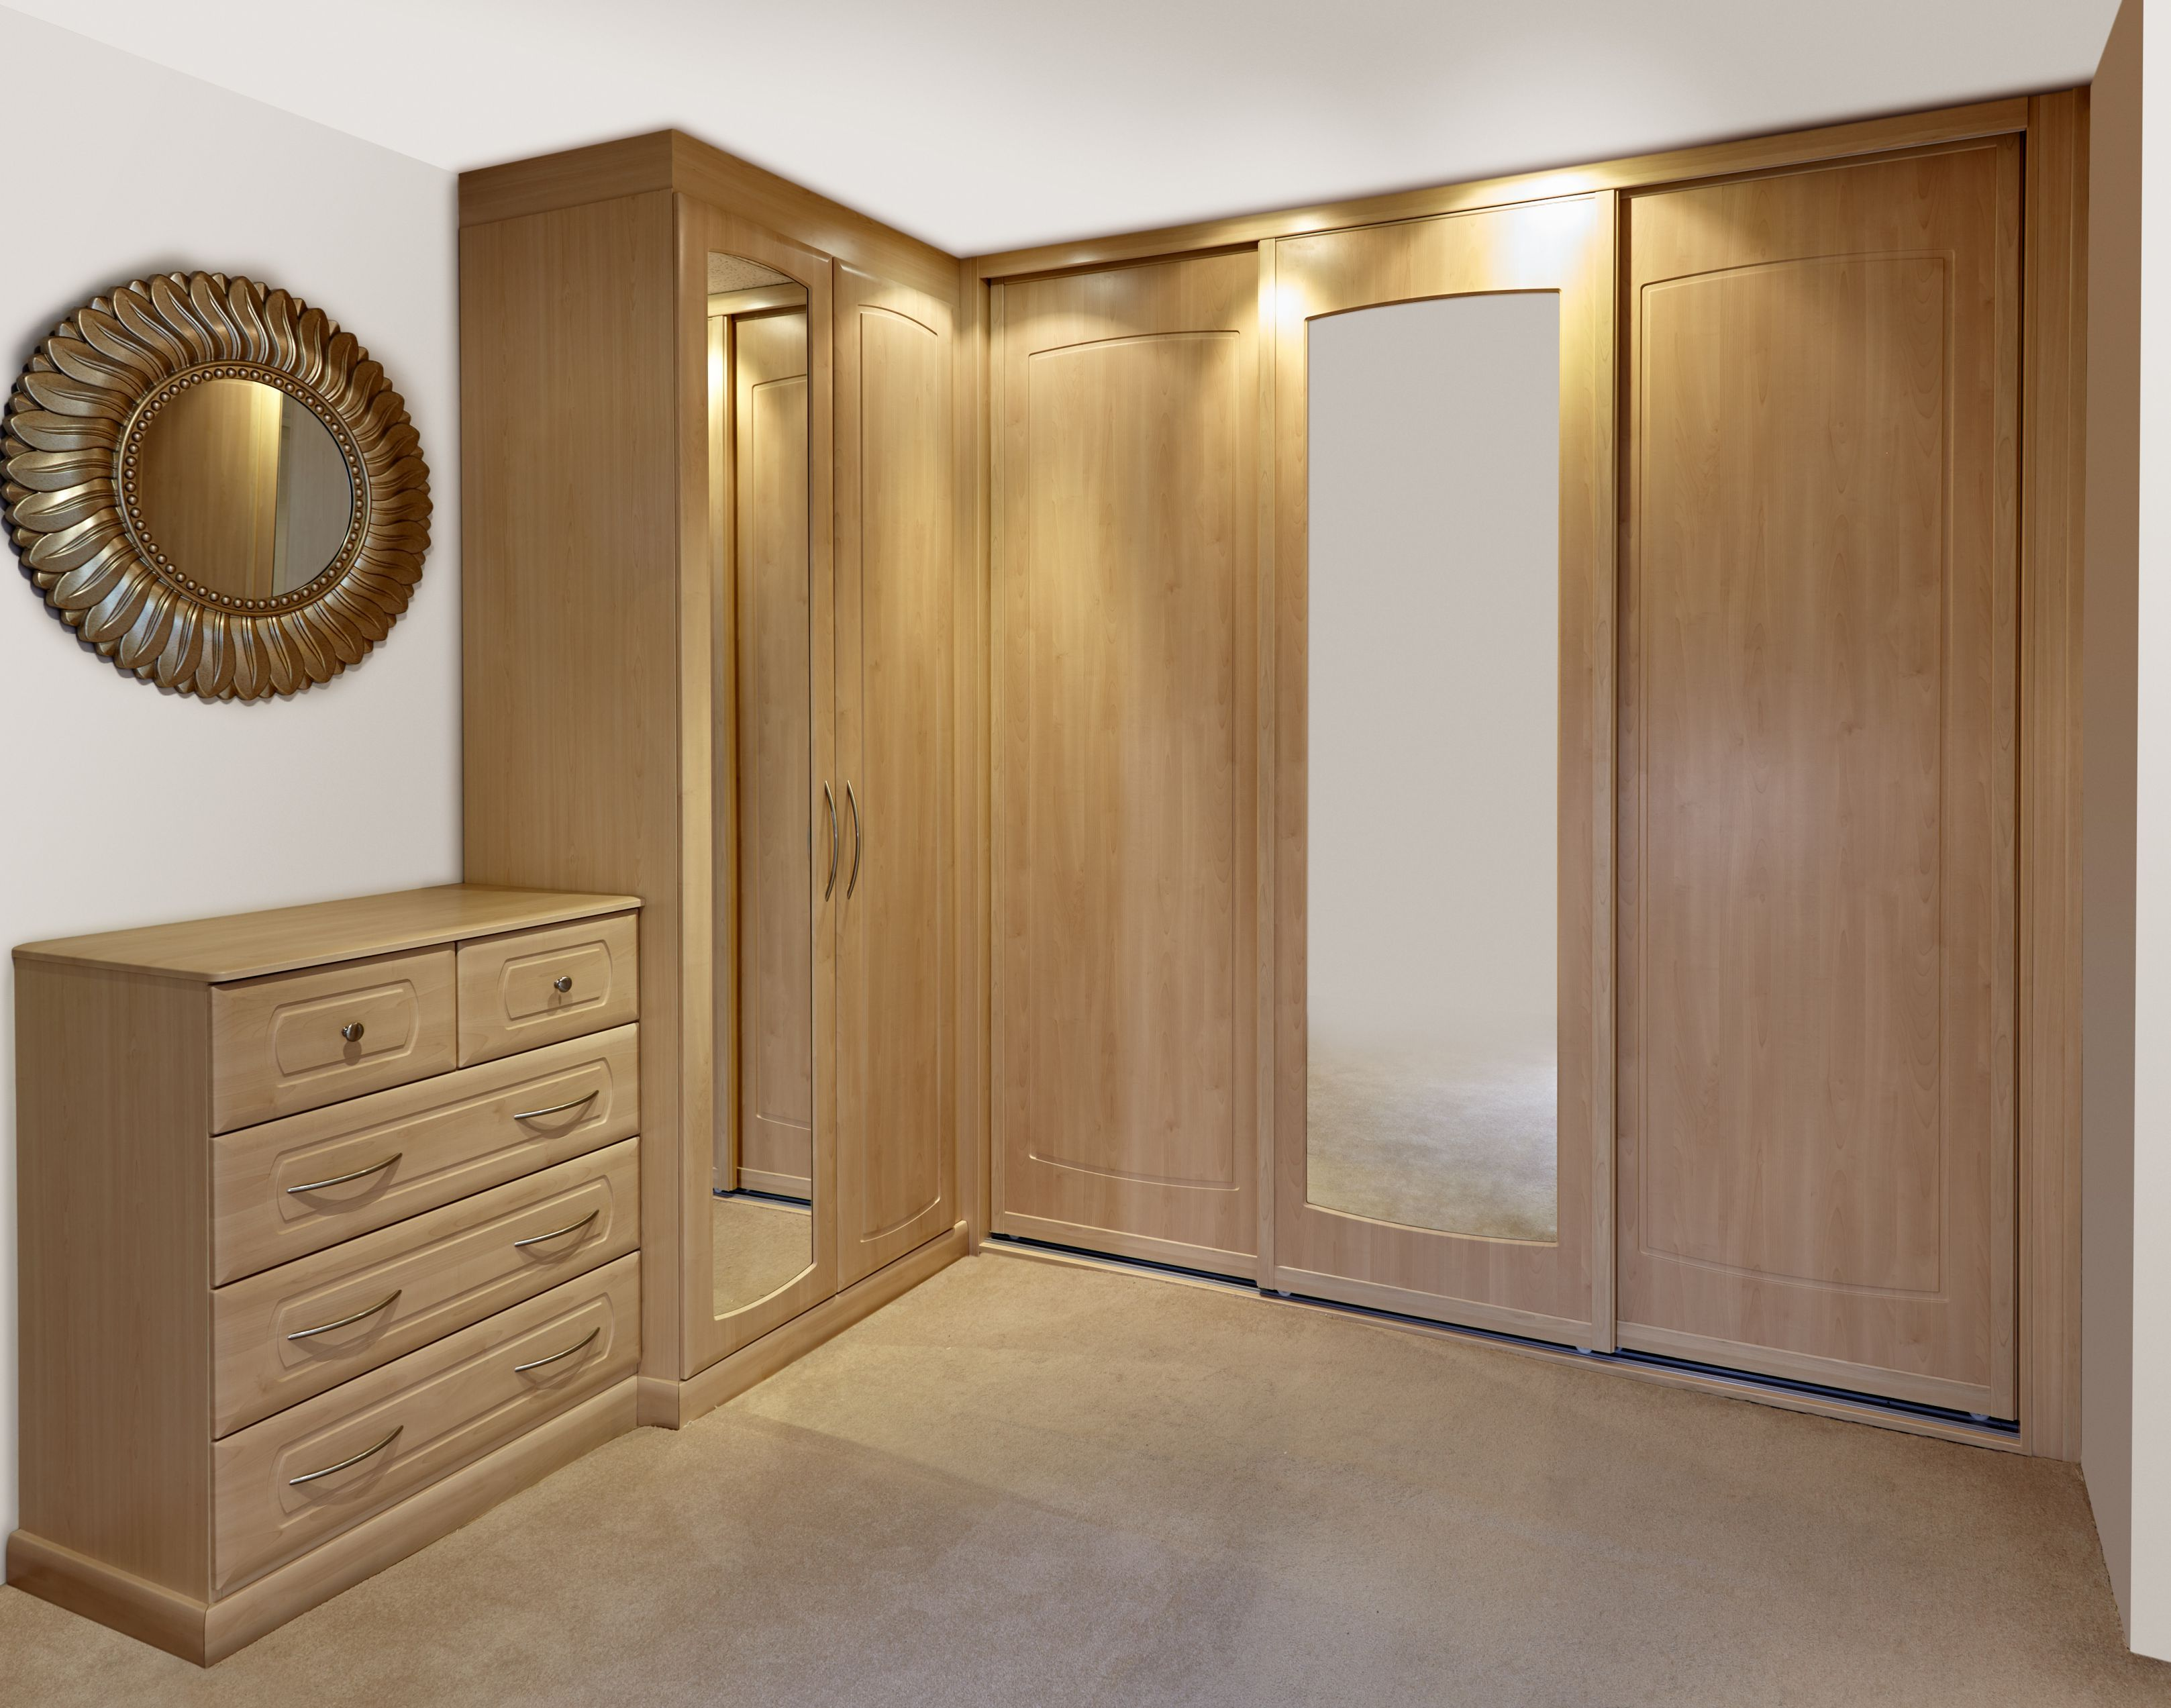 Built In Wardrobe Designs For Bedroom Pleasing Fitted Bedroom Furniture Ltd Built Wardrobe Ideas Small Bespoke Inspiration Design